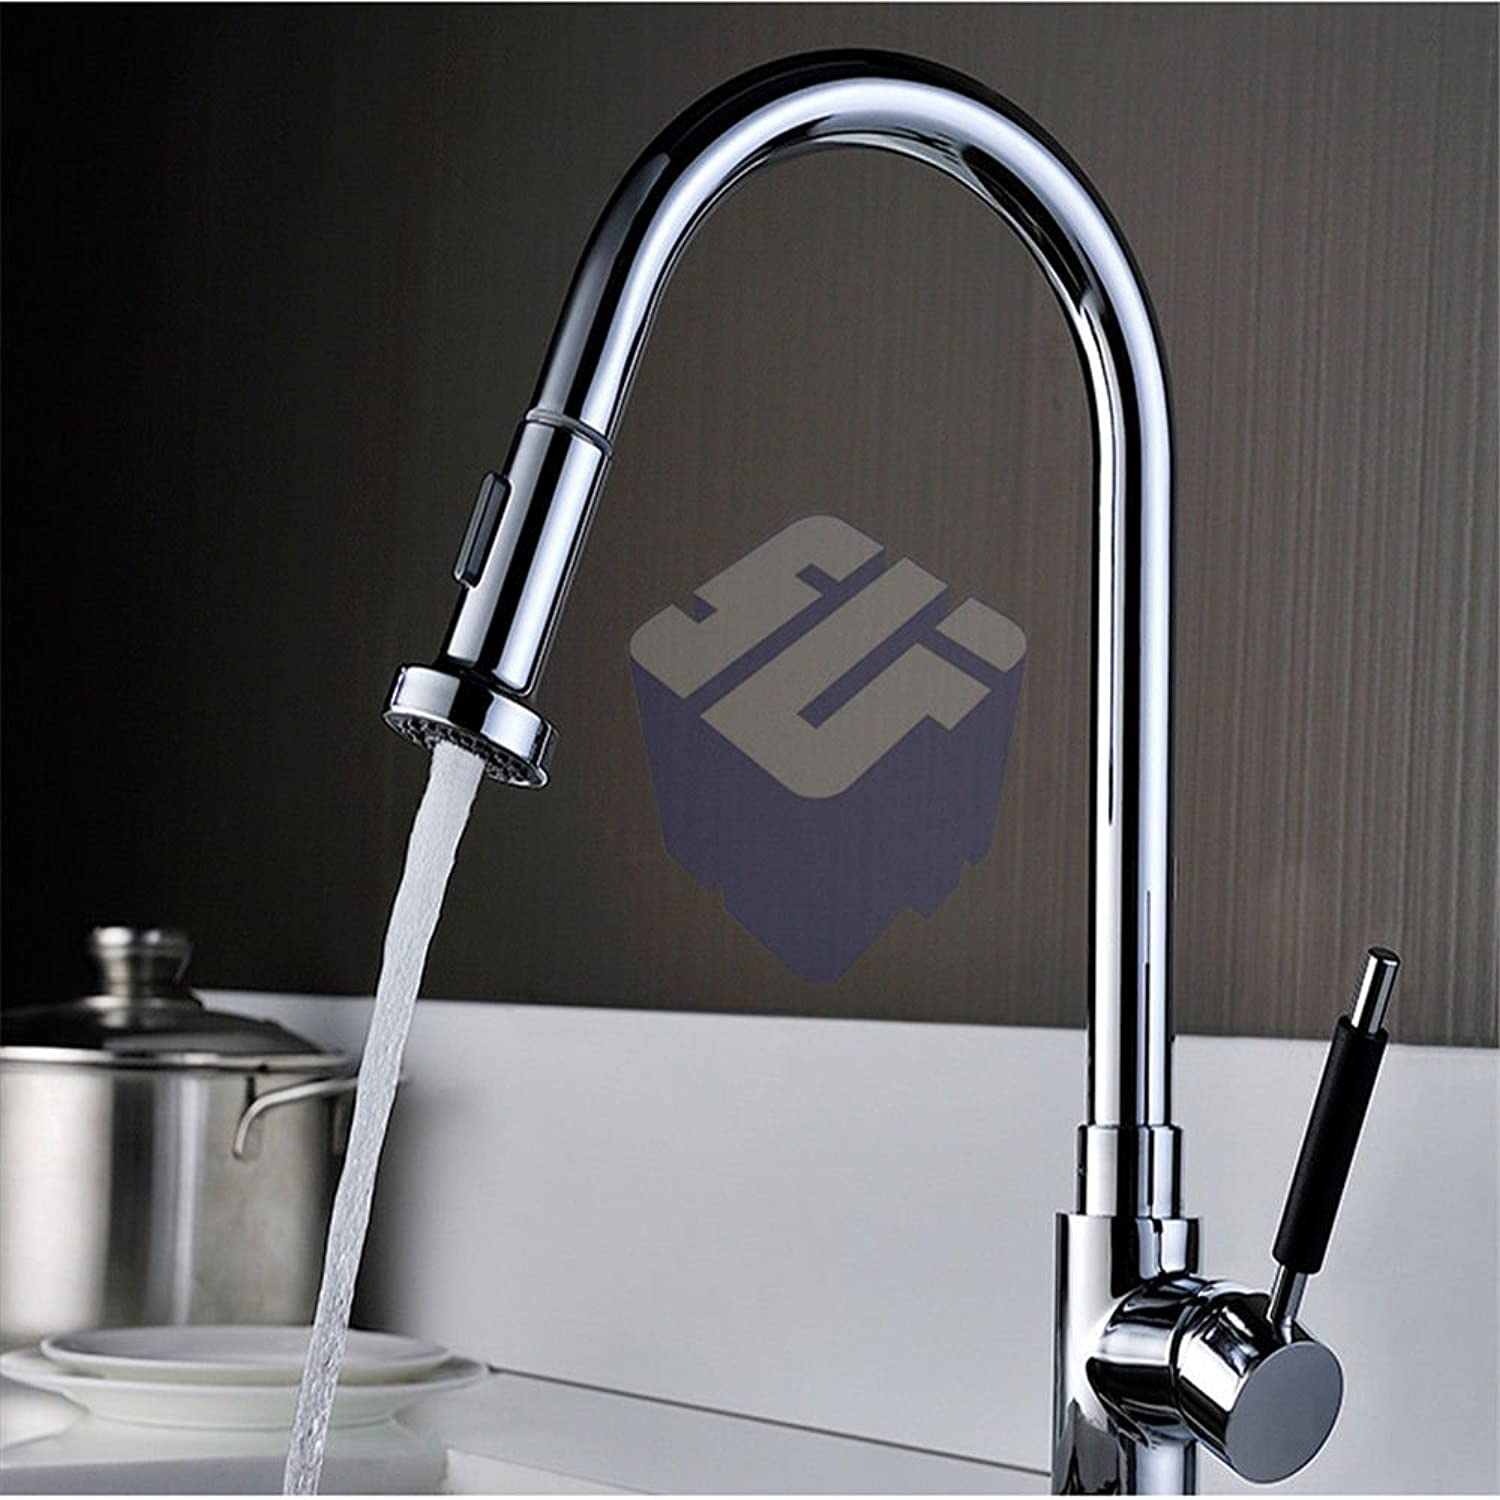 QIMEIM Professional Kitchen Sink Tap Brass Pull-Out Hot and Cold Water Basin Mixer Tap Basin Kitchen Faucet